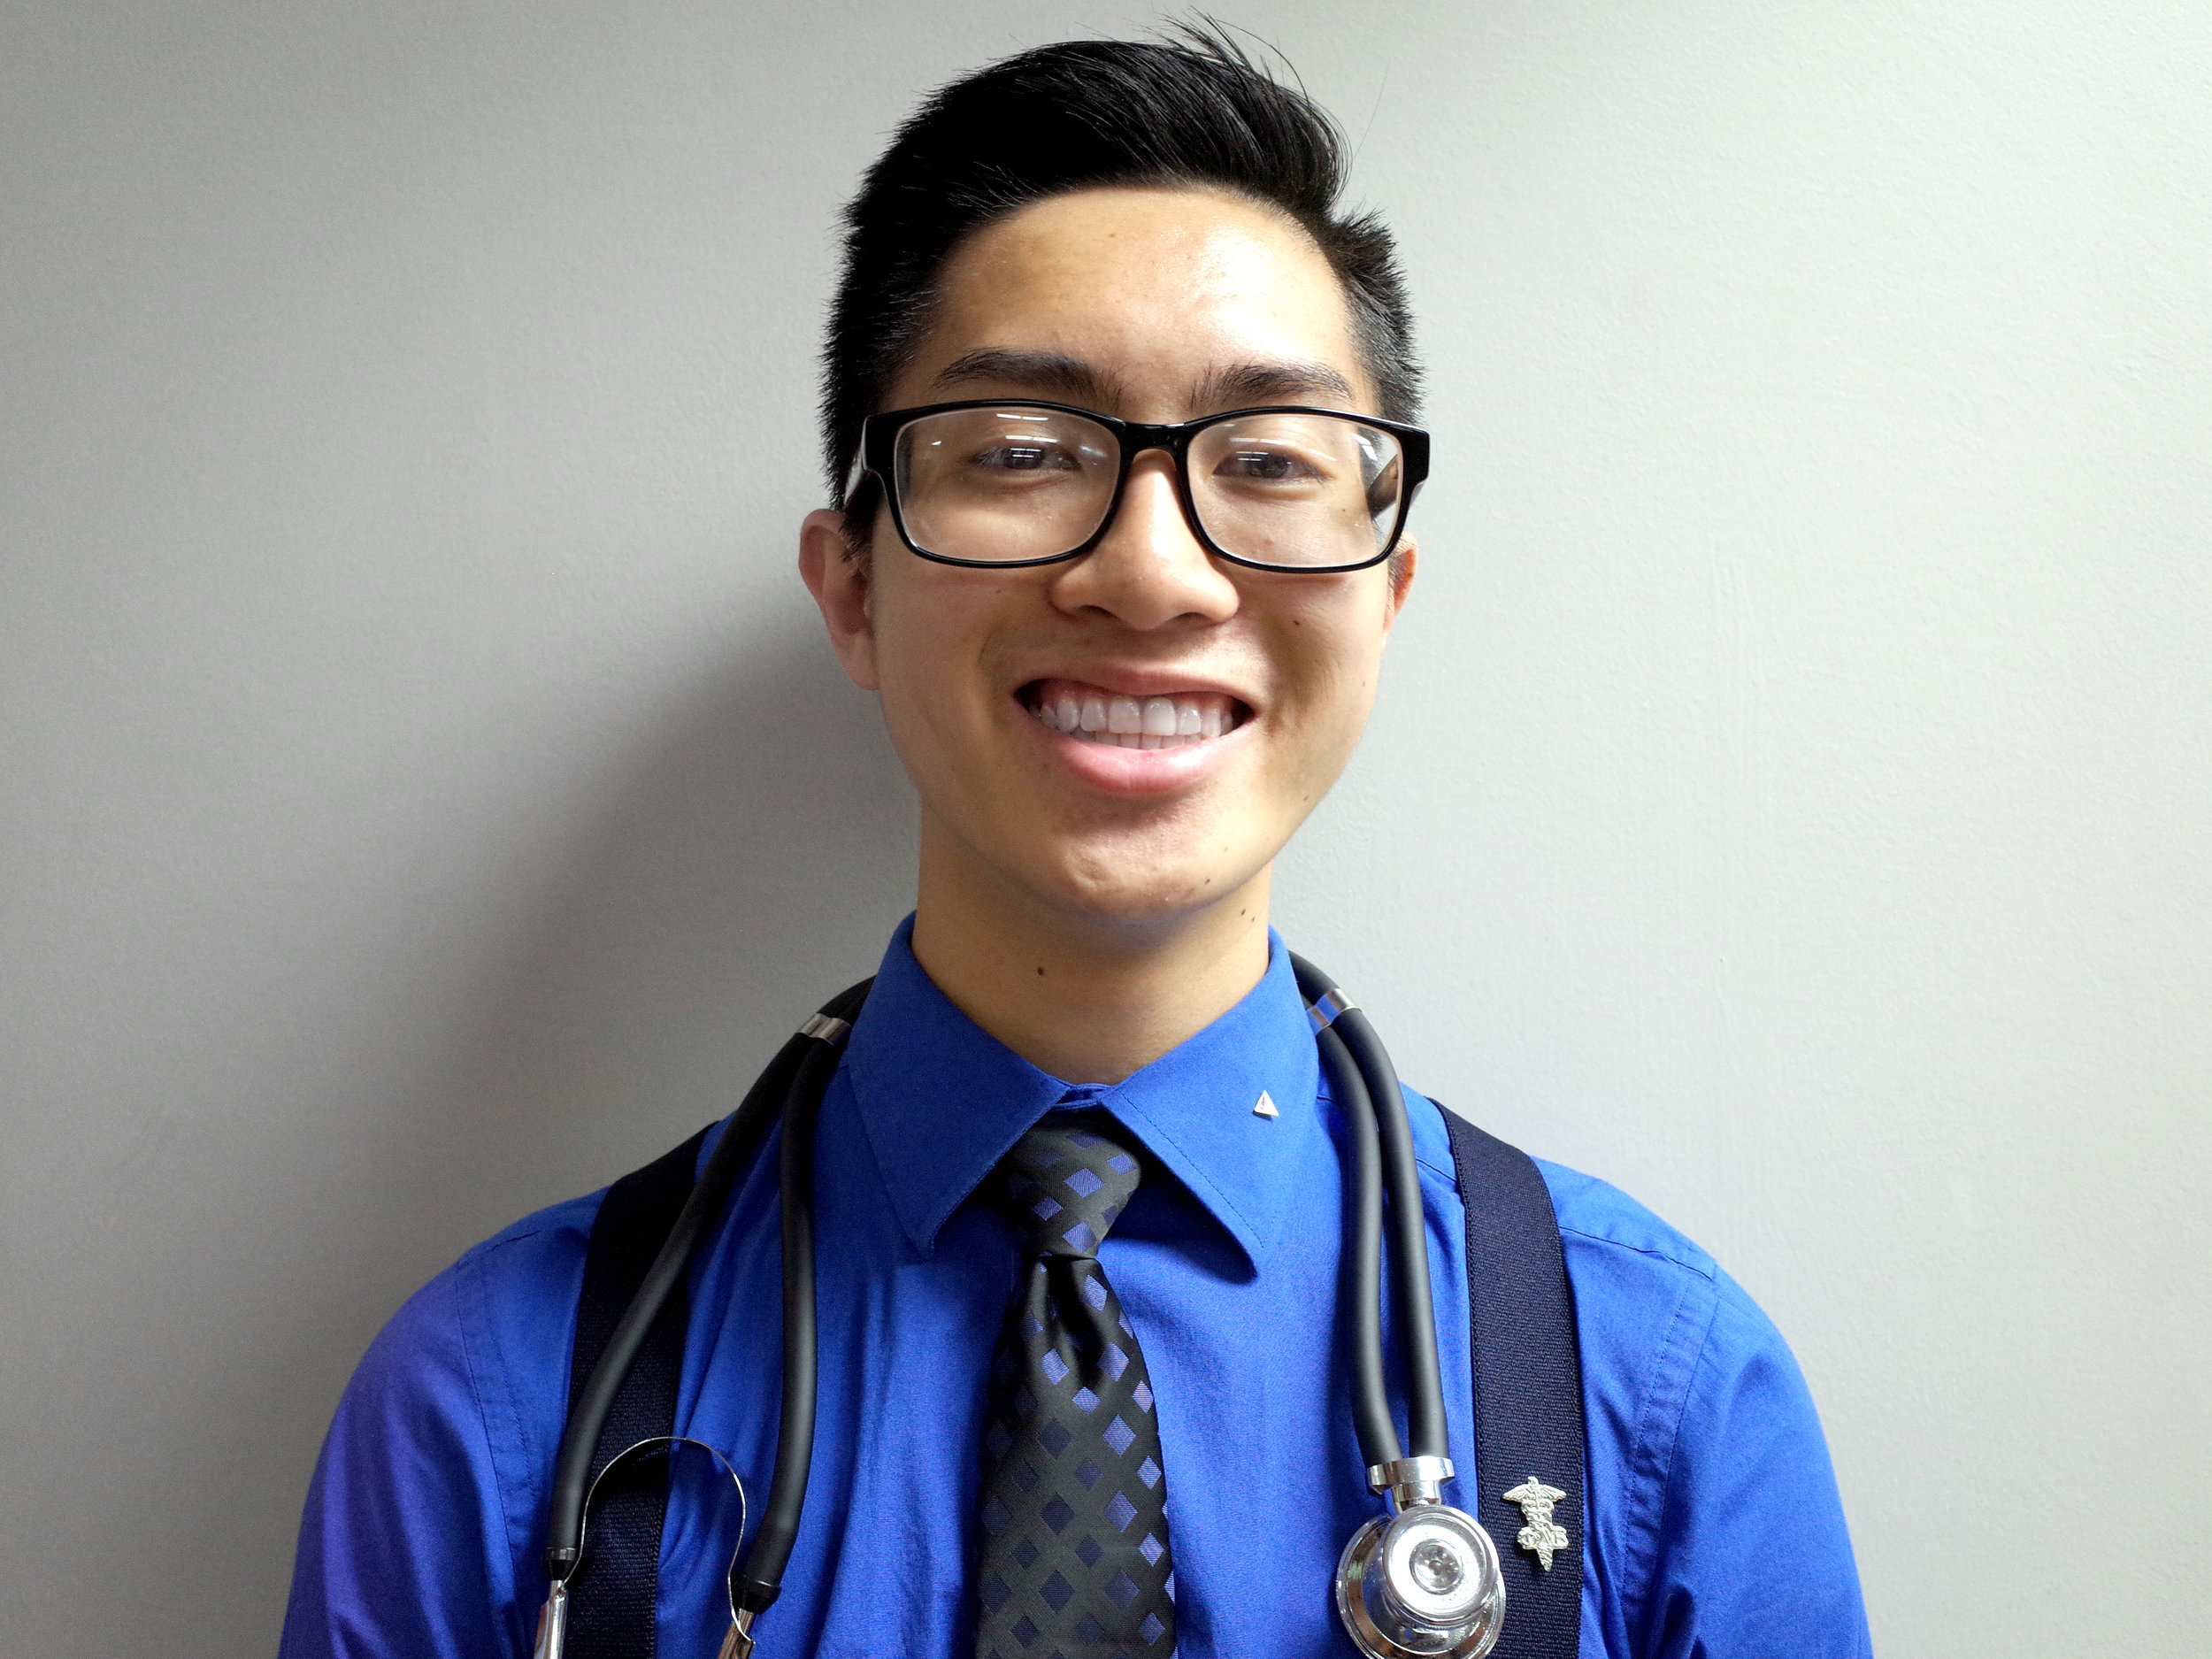 Anthony Nguyen   Major: Biological Sciences Career Goal: Pediatrician